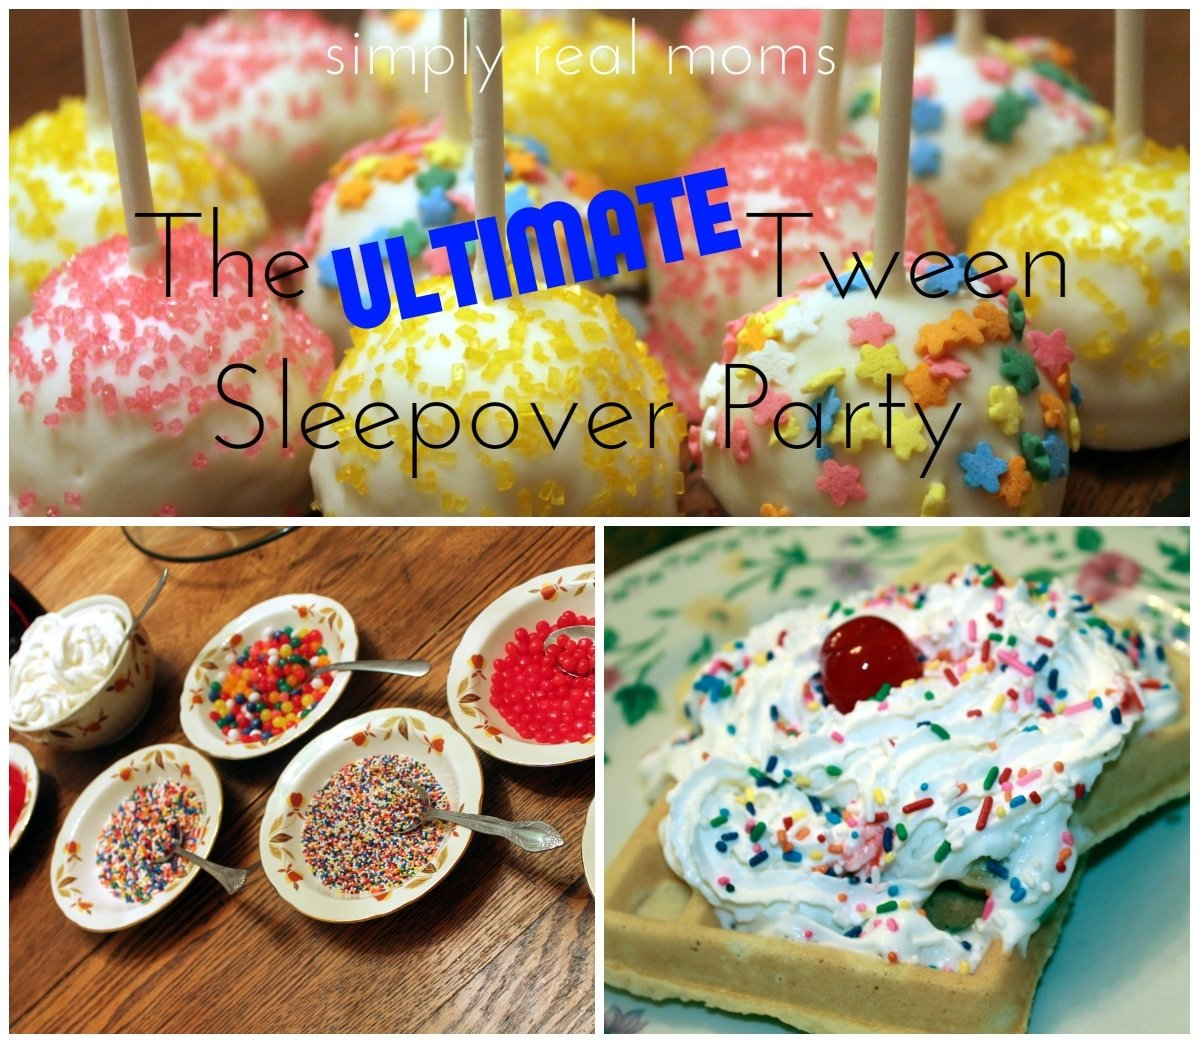 10 Most Popular Slumber Party Ideas For Tweens the ultimate tween sleepover party ideas simply real moms 1